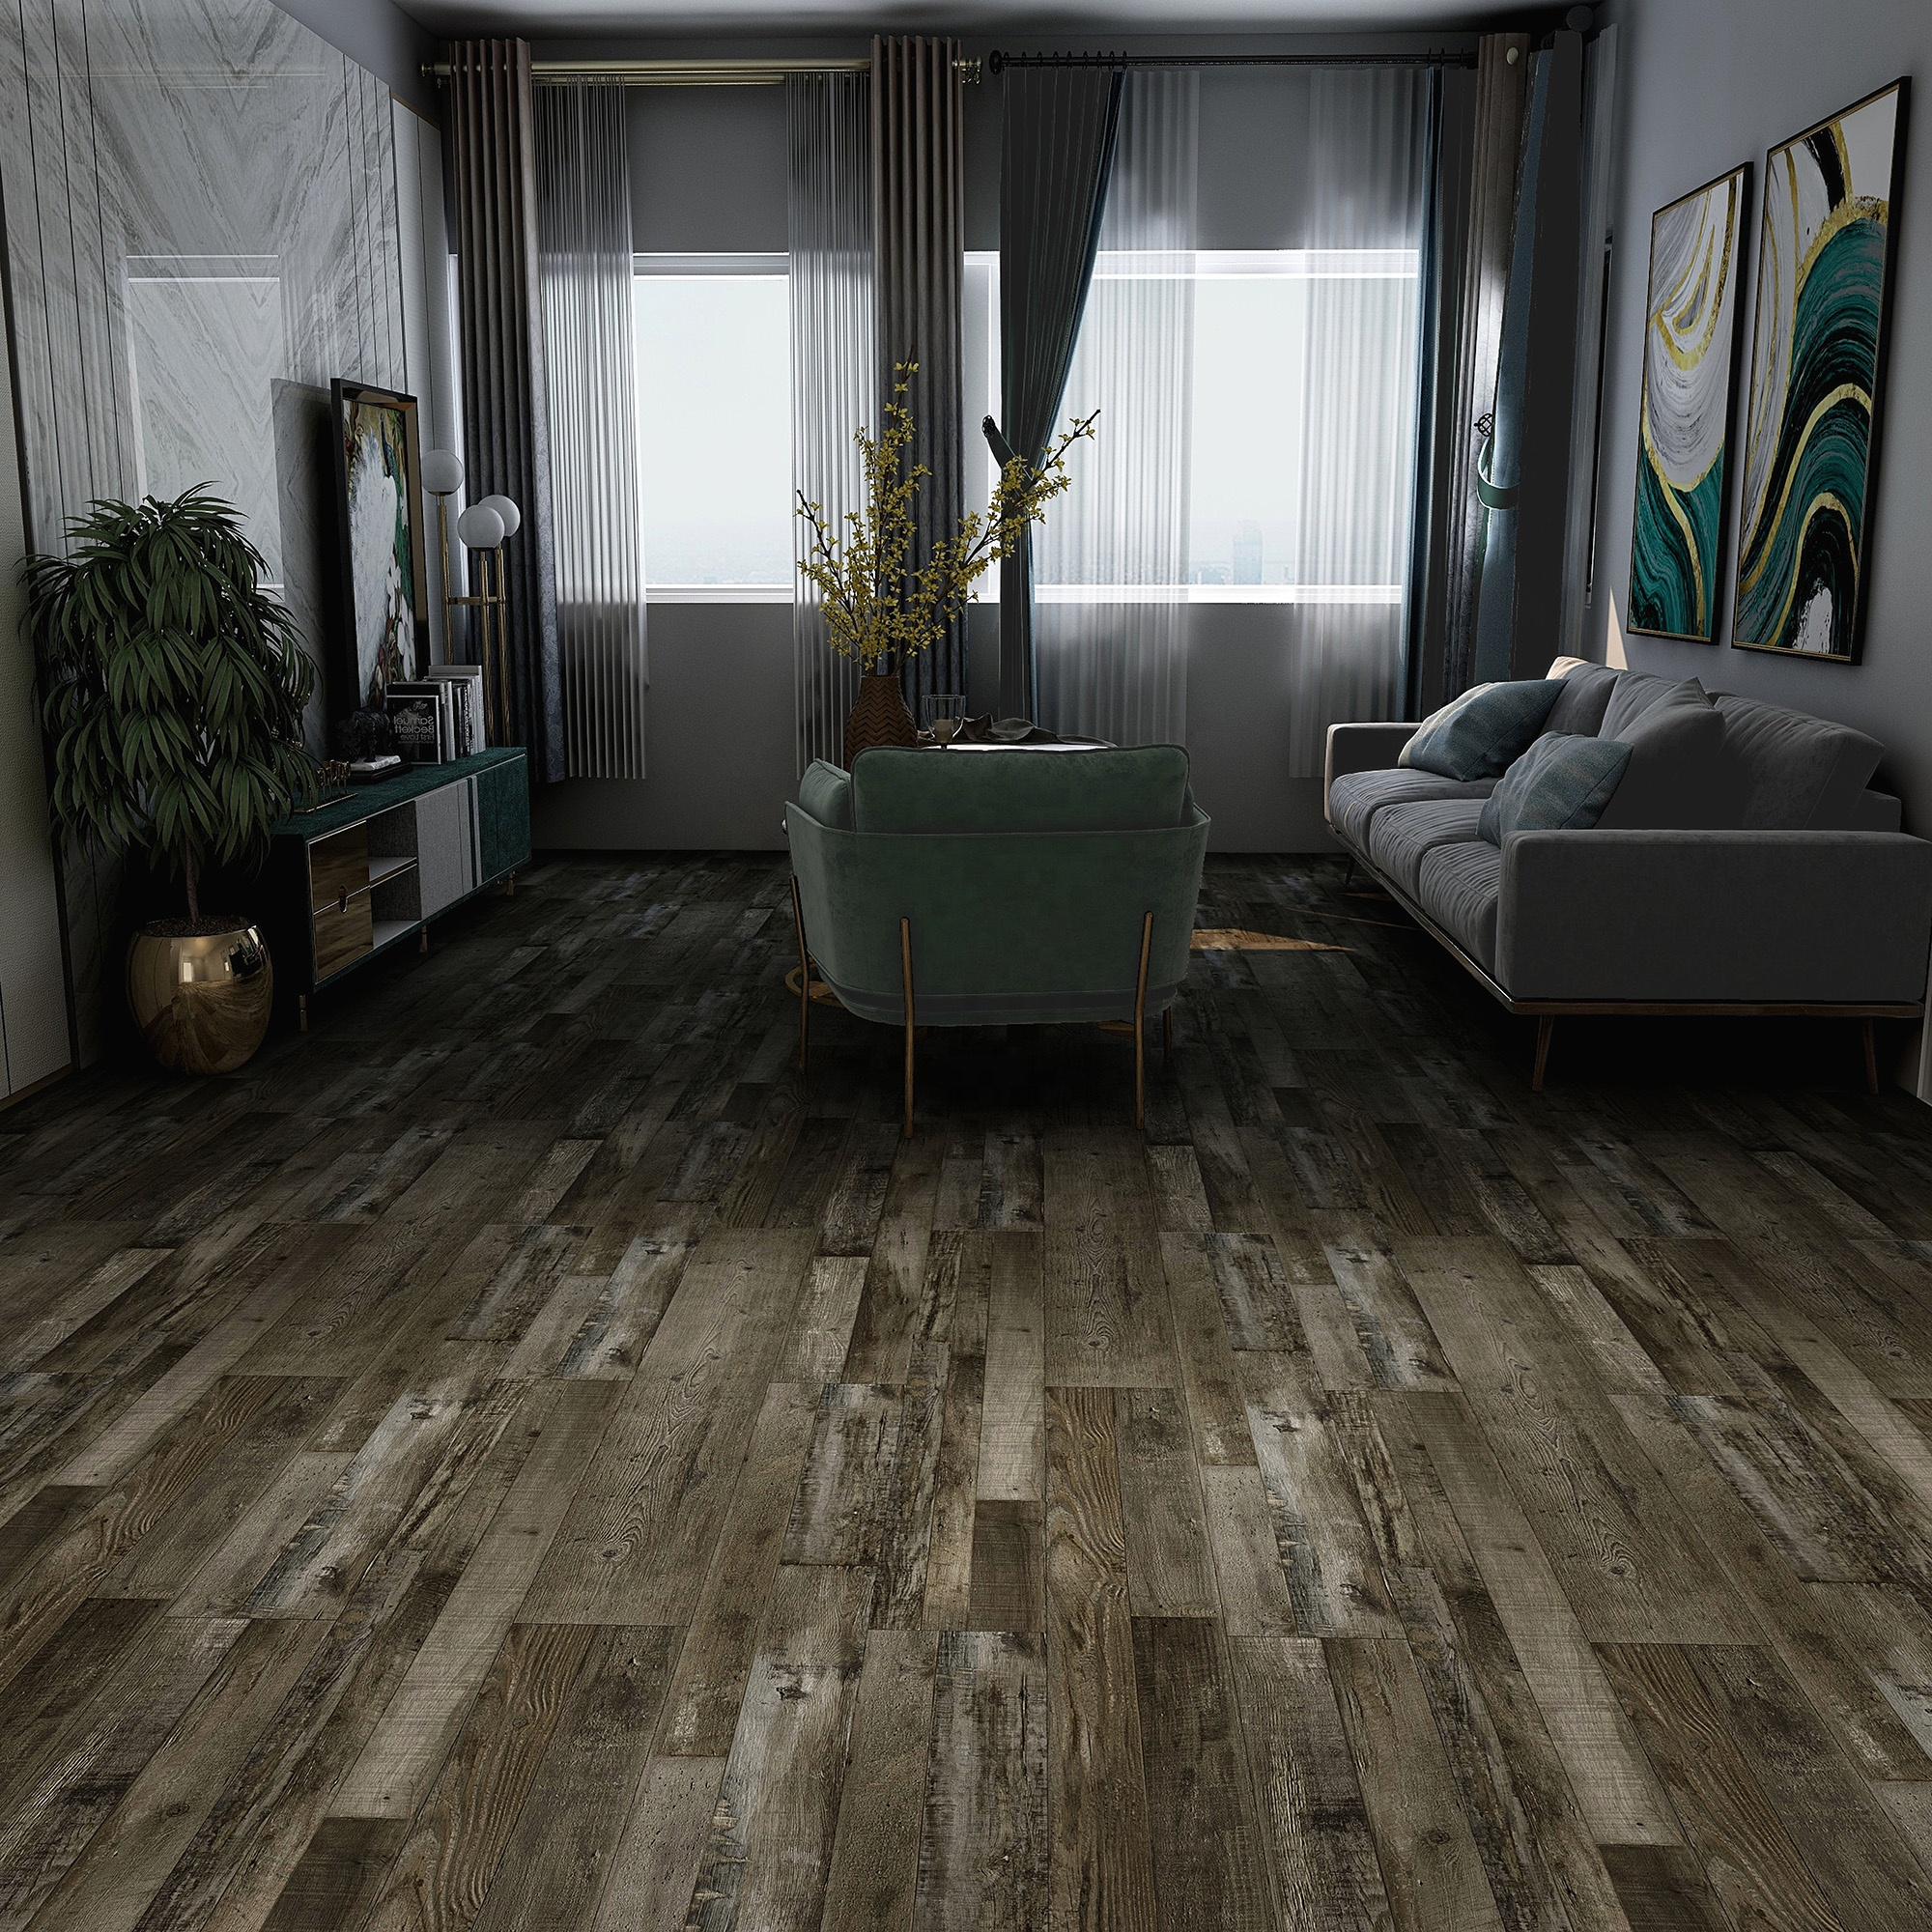 Waterproof Quick Cilck PVC Vinyl/SPC/WPC/ Laminate Flooring for Residential and Commercial